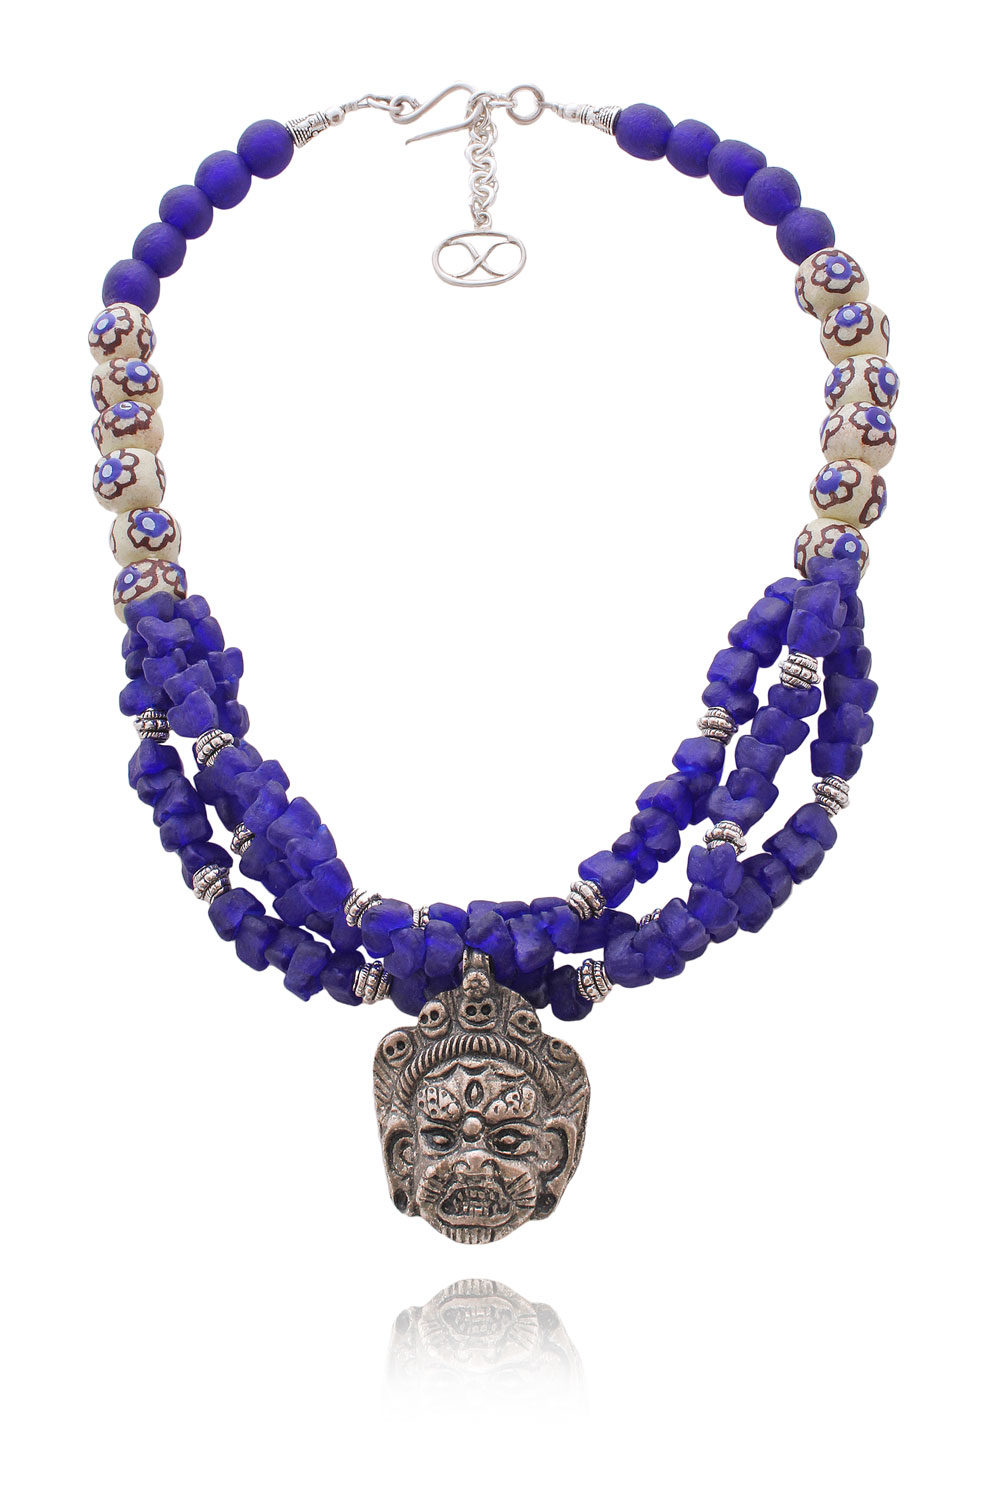 Oni Tibetan Mahakala Ghana Glass Necklace by SHIKHAZURI